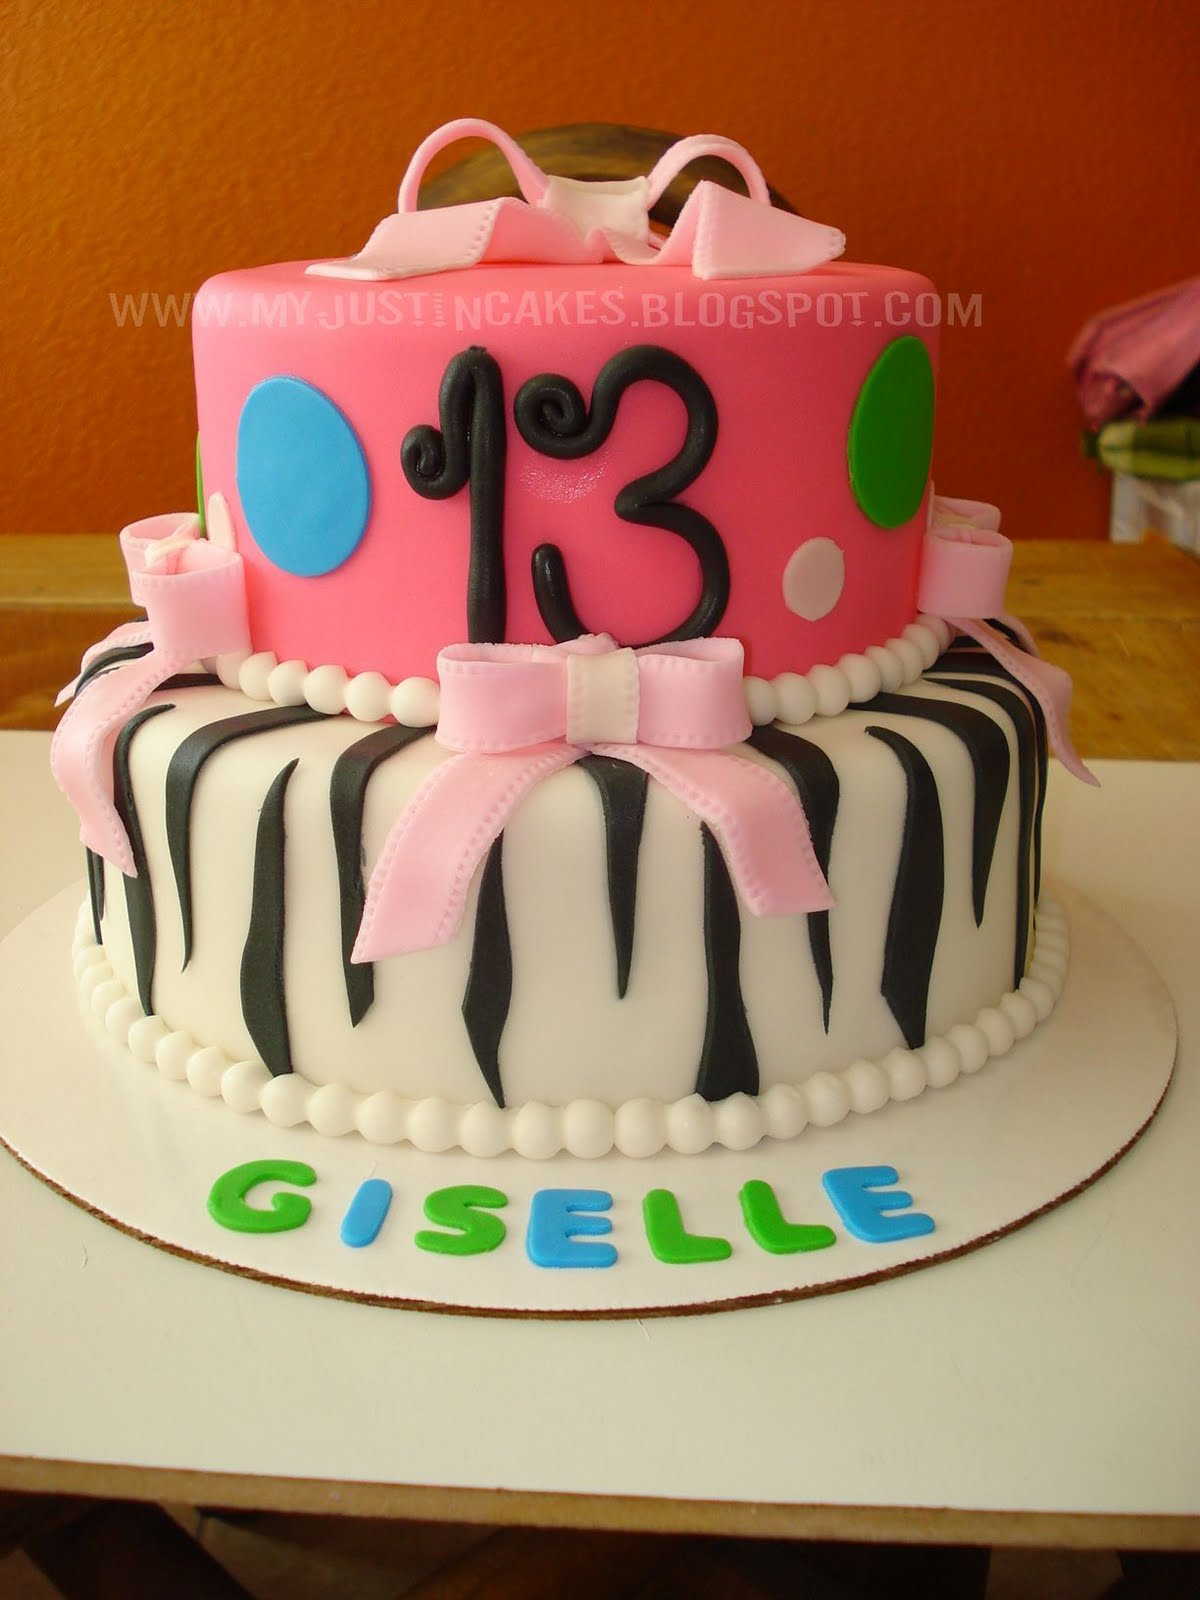 7 Year Old Birthday Cakes http://myjustincakes.blogspot.com/2011/12/13-year-old-girl-birthday-cake.html